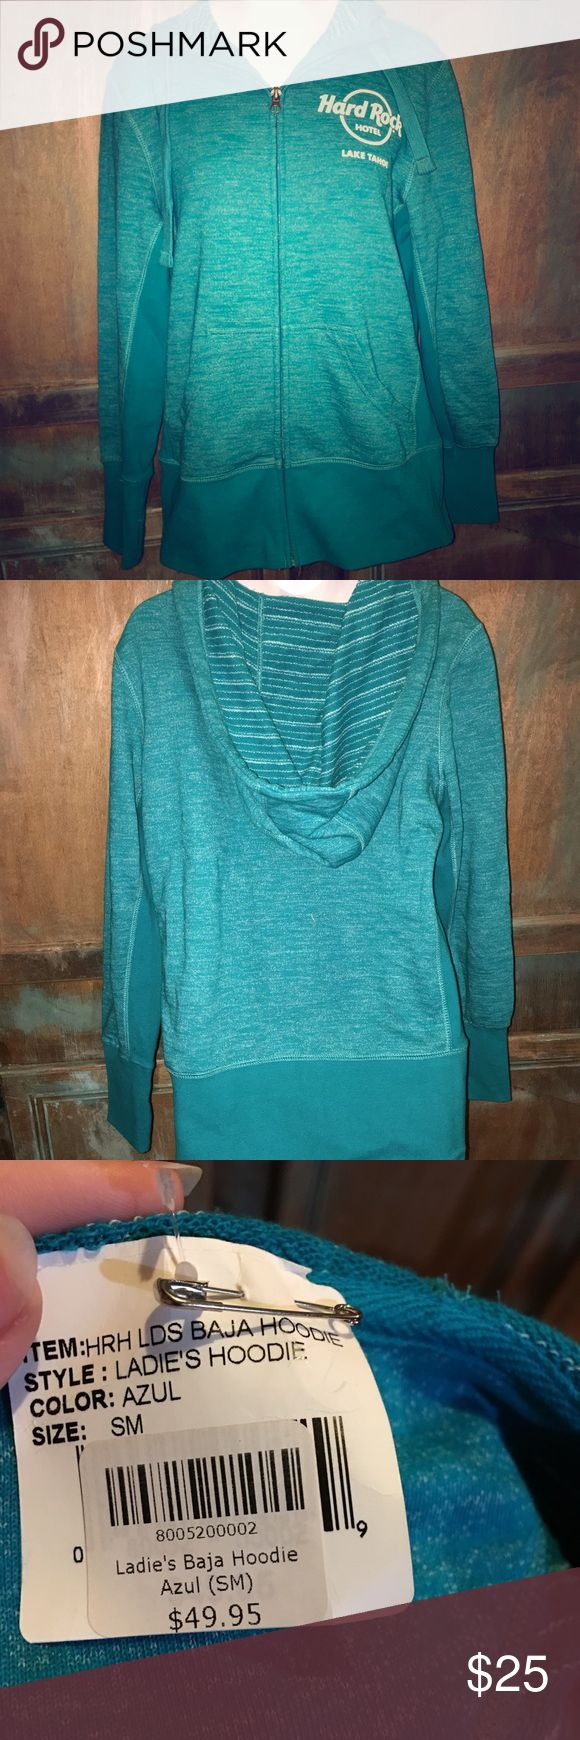 NWT Hard Rock Hotel Hoodie Brand new with tags hoodie! Hard Rock Hotel Lake Tahoe, super cozy and good for this fall or winter, big over sized hood with draw strings, zipper in the front, nice teal/emerald color, no holes or damages! Hard Rock Jackets & Coats